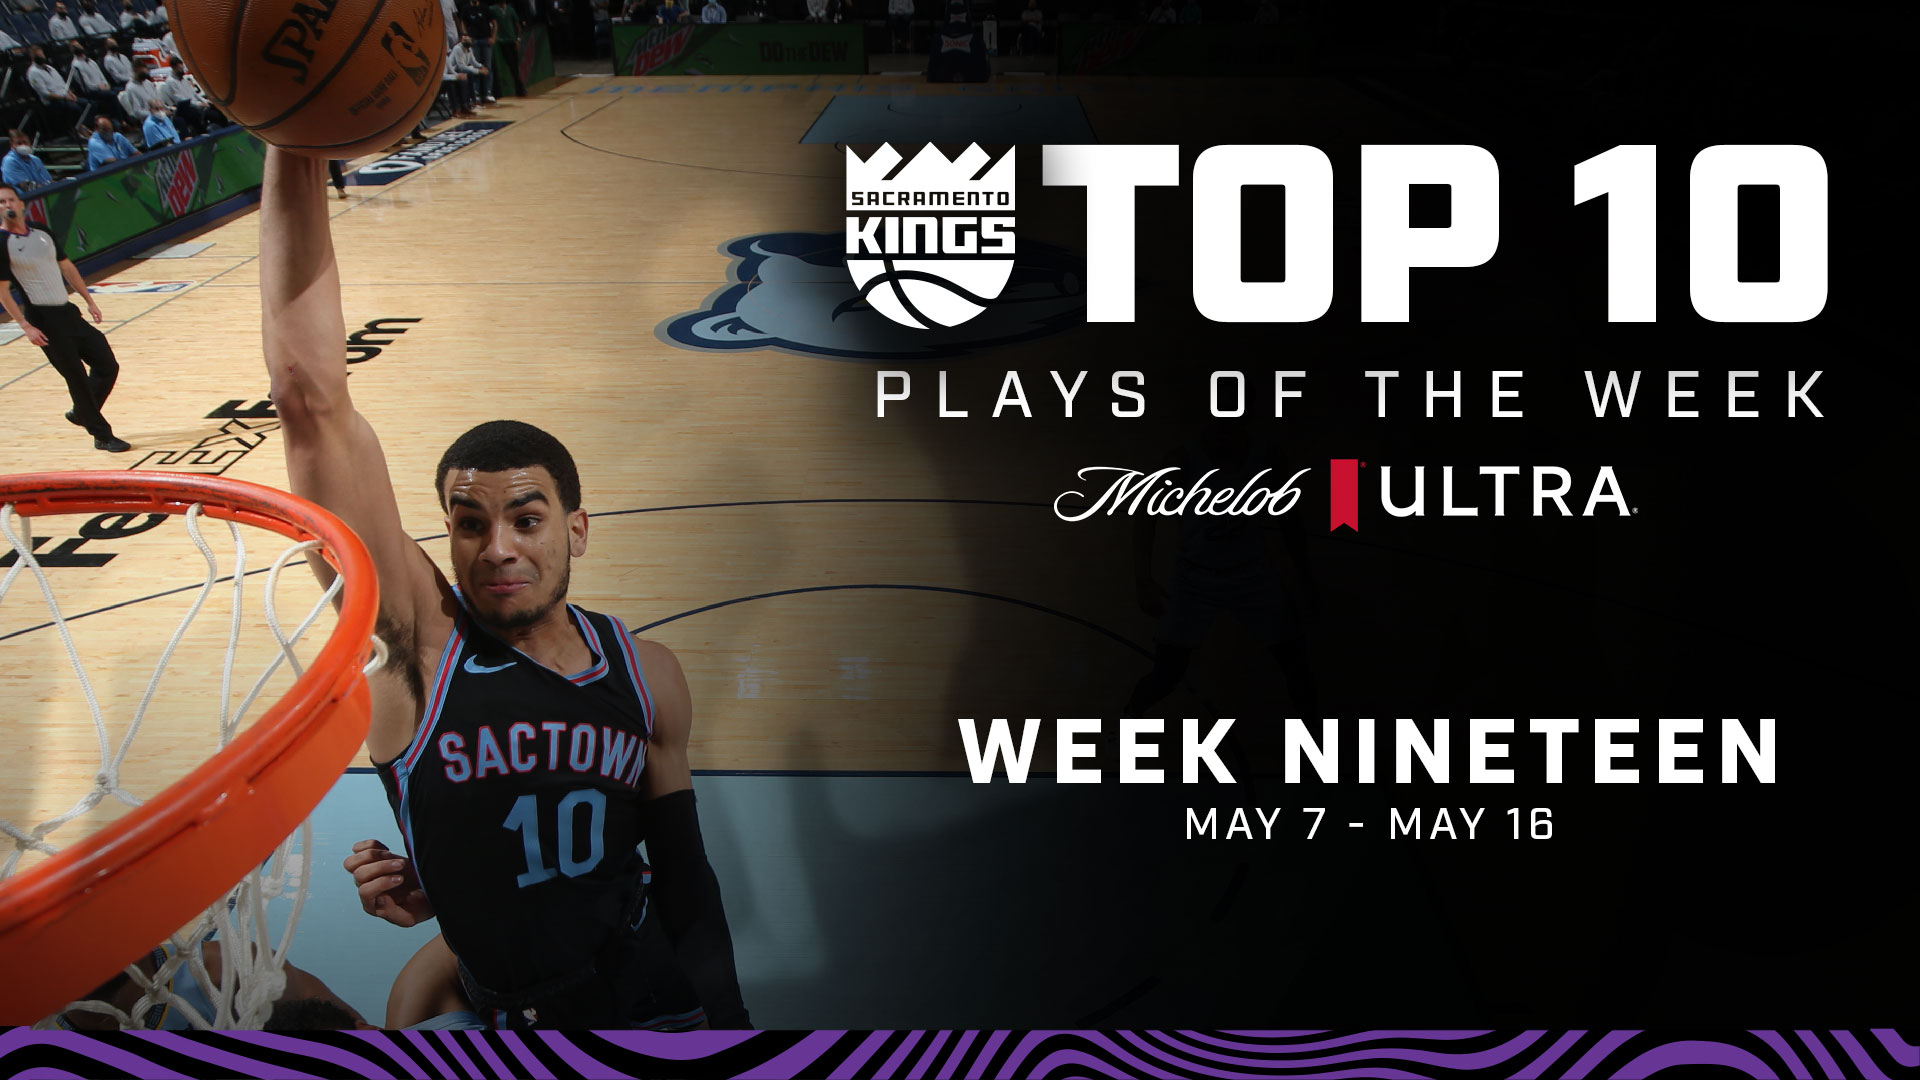 Kings Top 10 Plays of the Week | Week 19